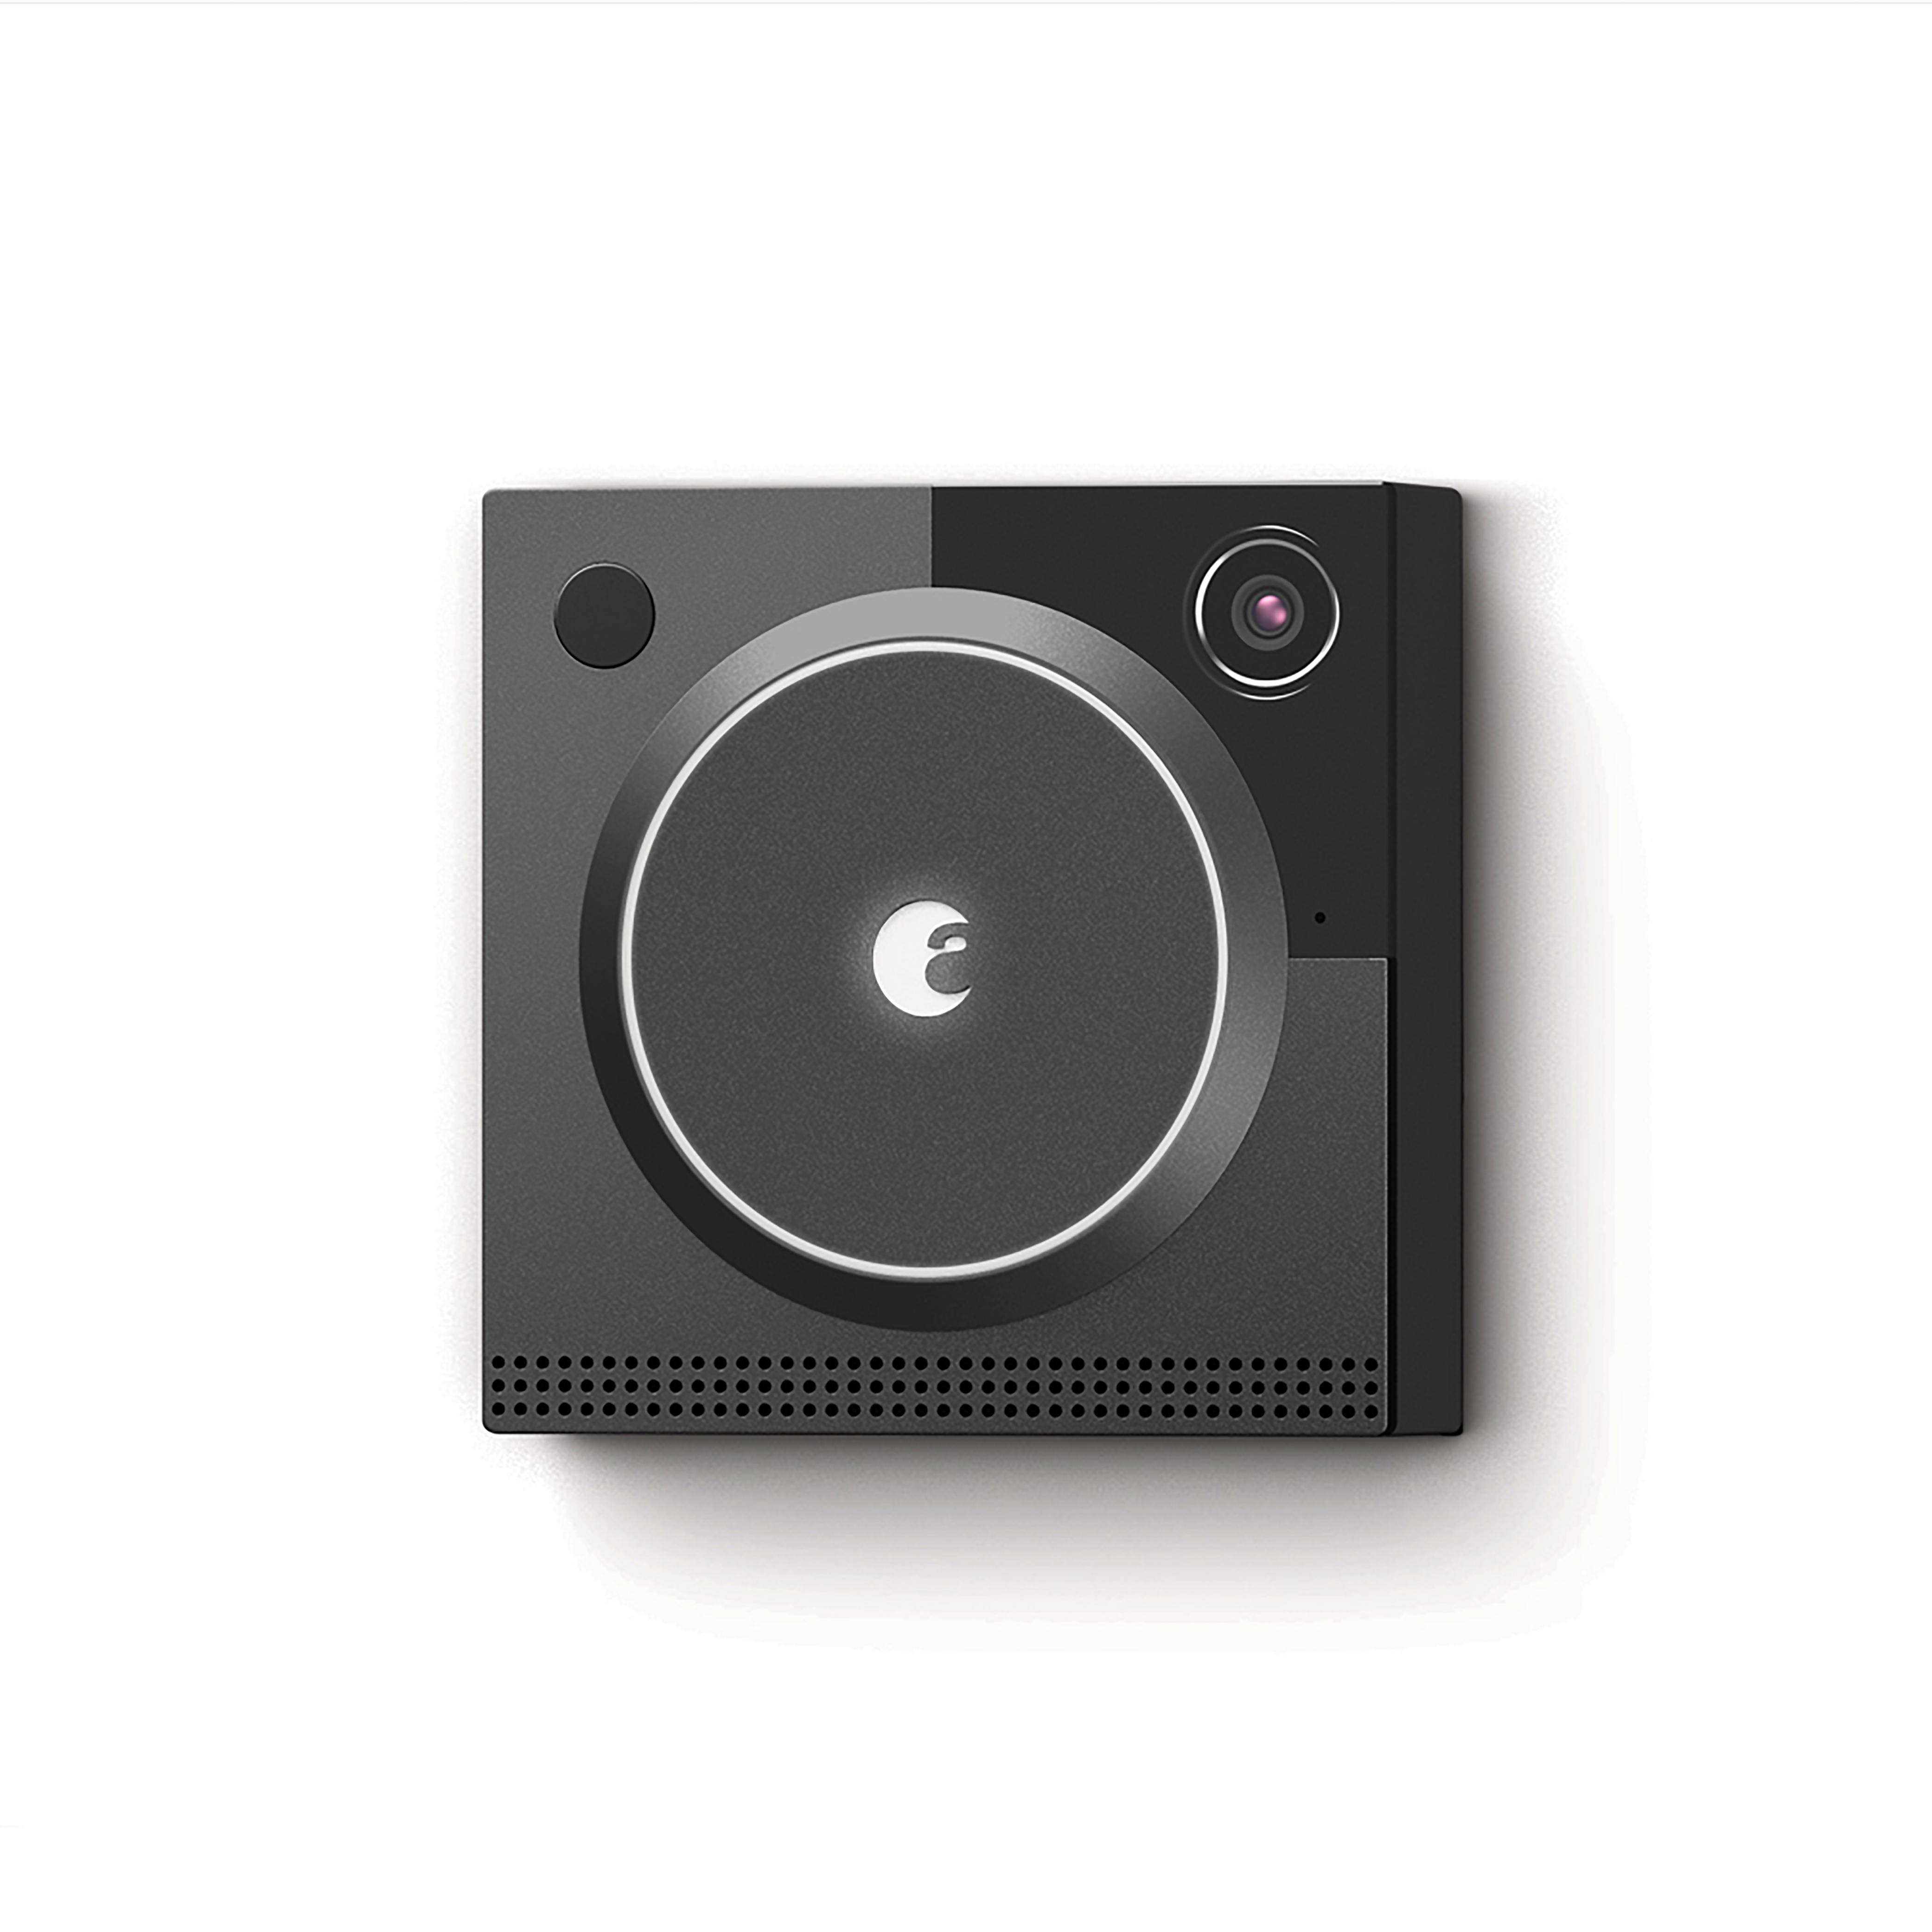 August Home Doorbell Cam Pro, Dark Gray by August Home